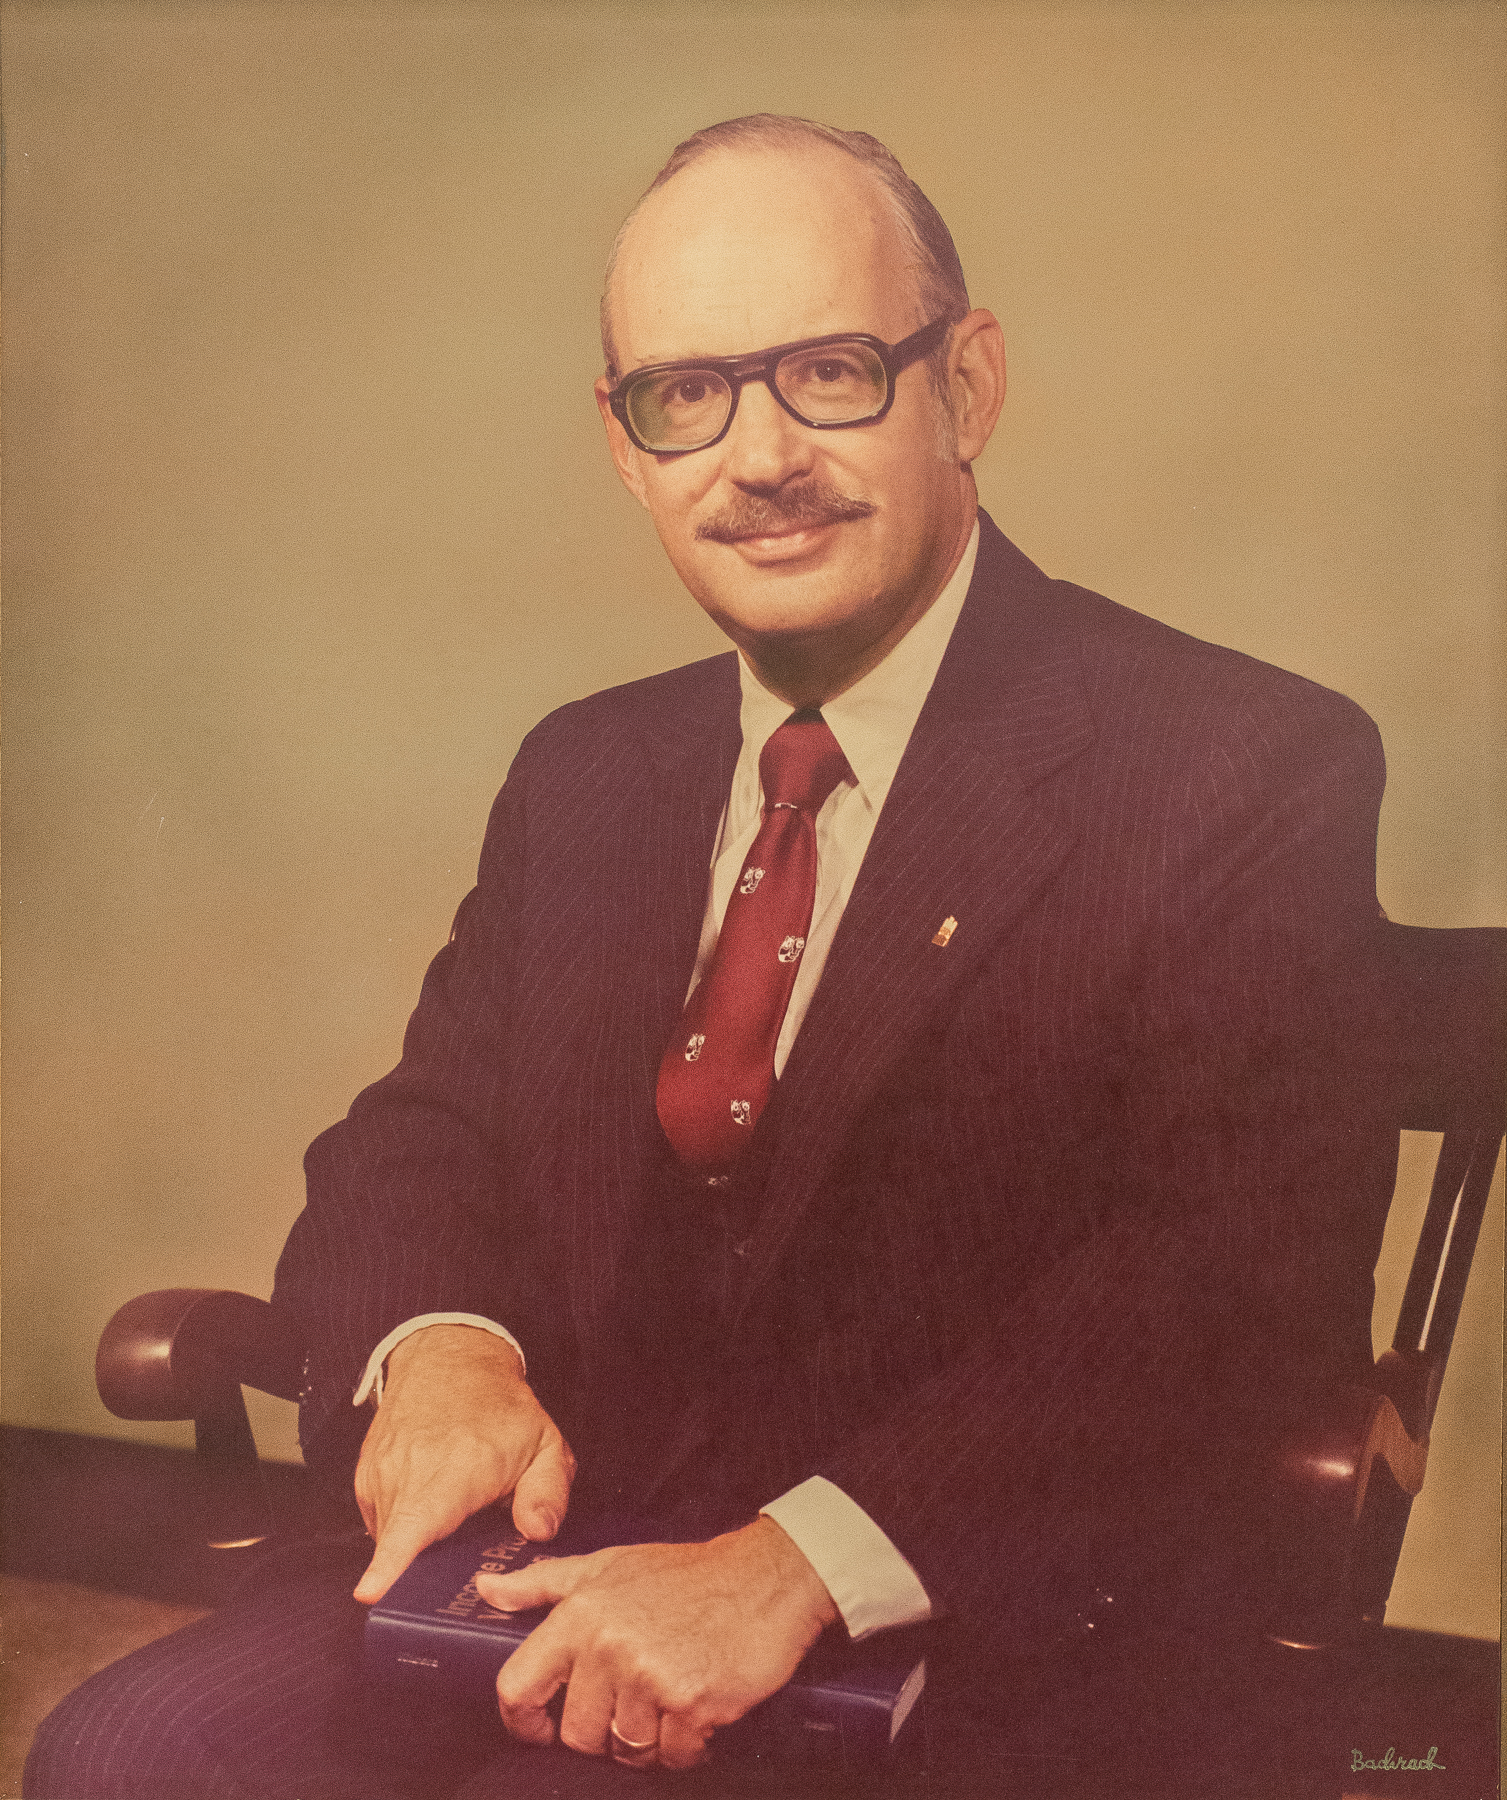 William (Bill) Kinnard. Interim Dean 1973-1974.